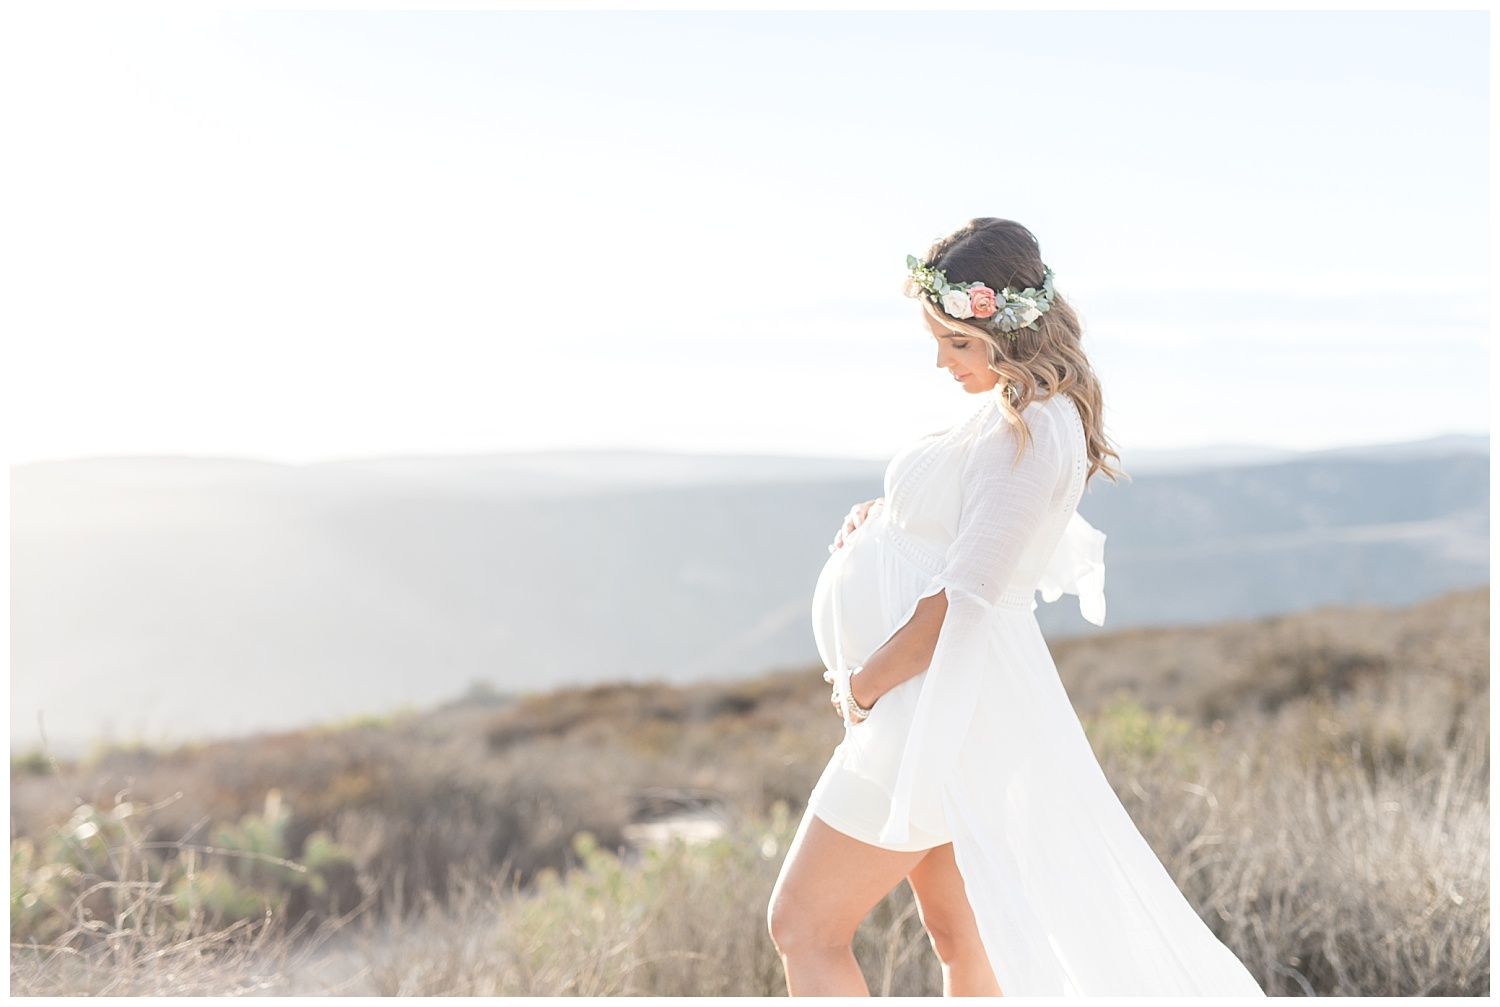 ashley - laguna beach, orange county hiking trail - maternity-0020